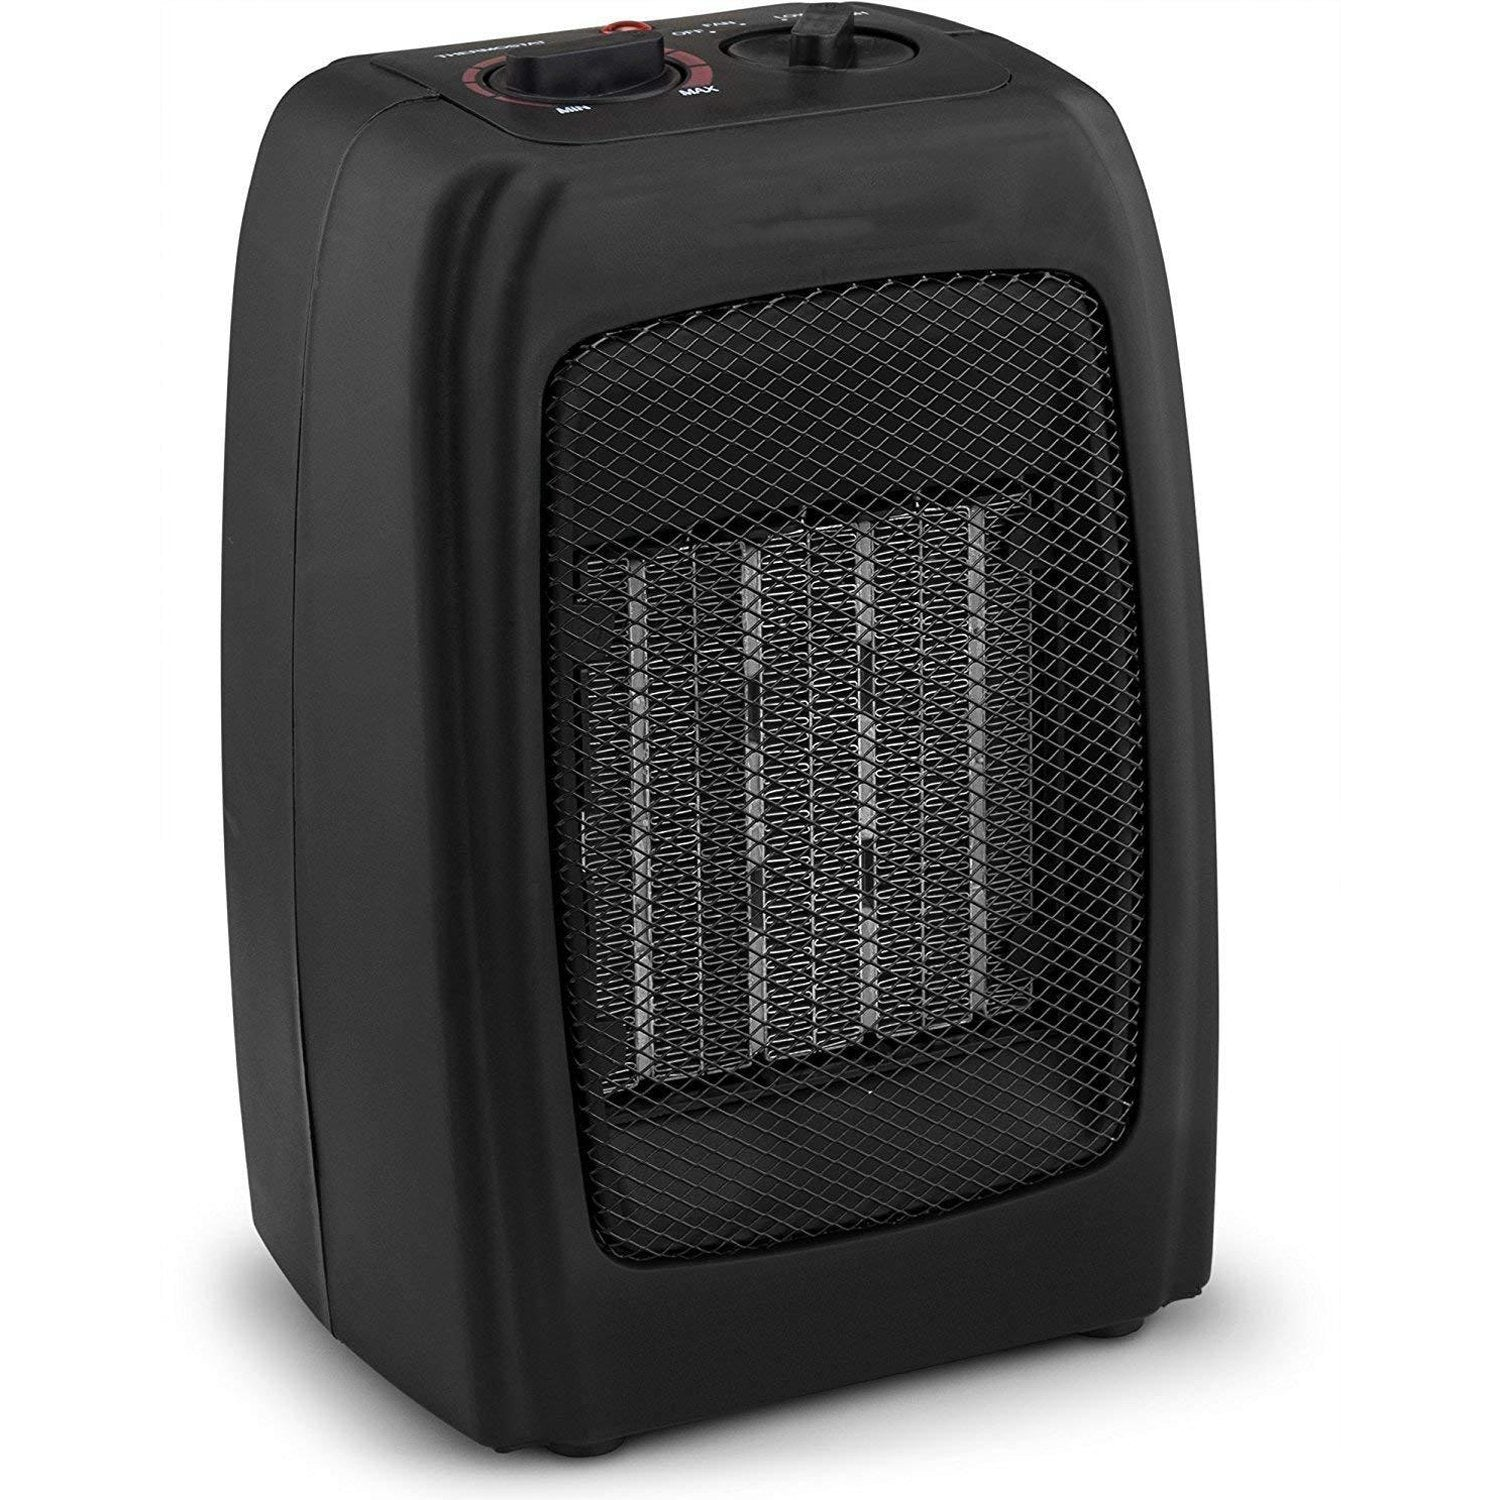 Personal Heater with Adjustable Thermostat